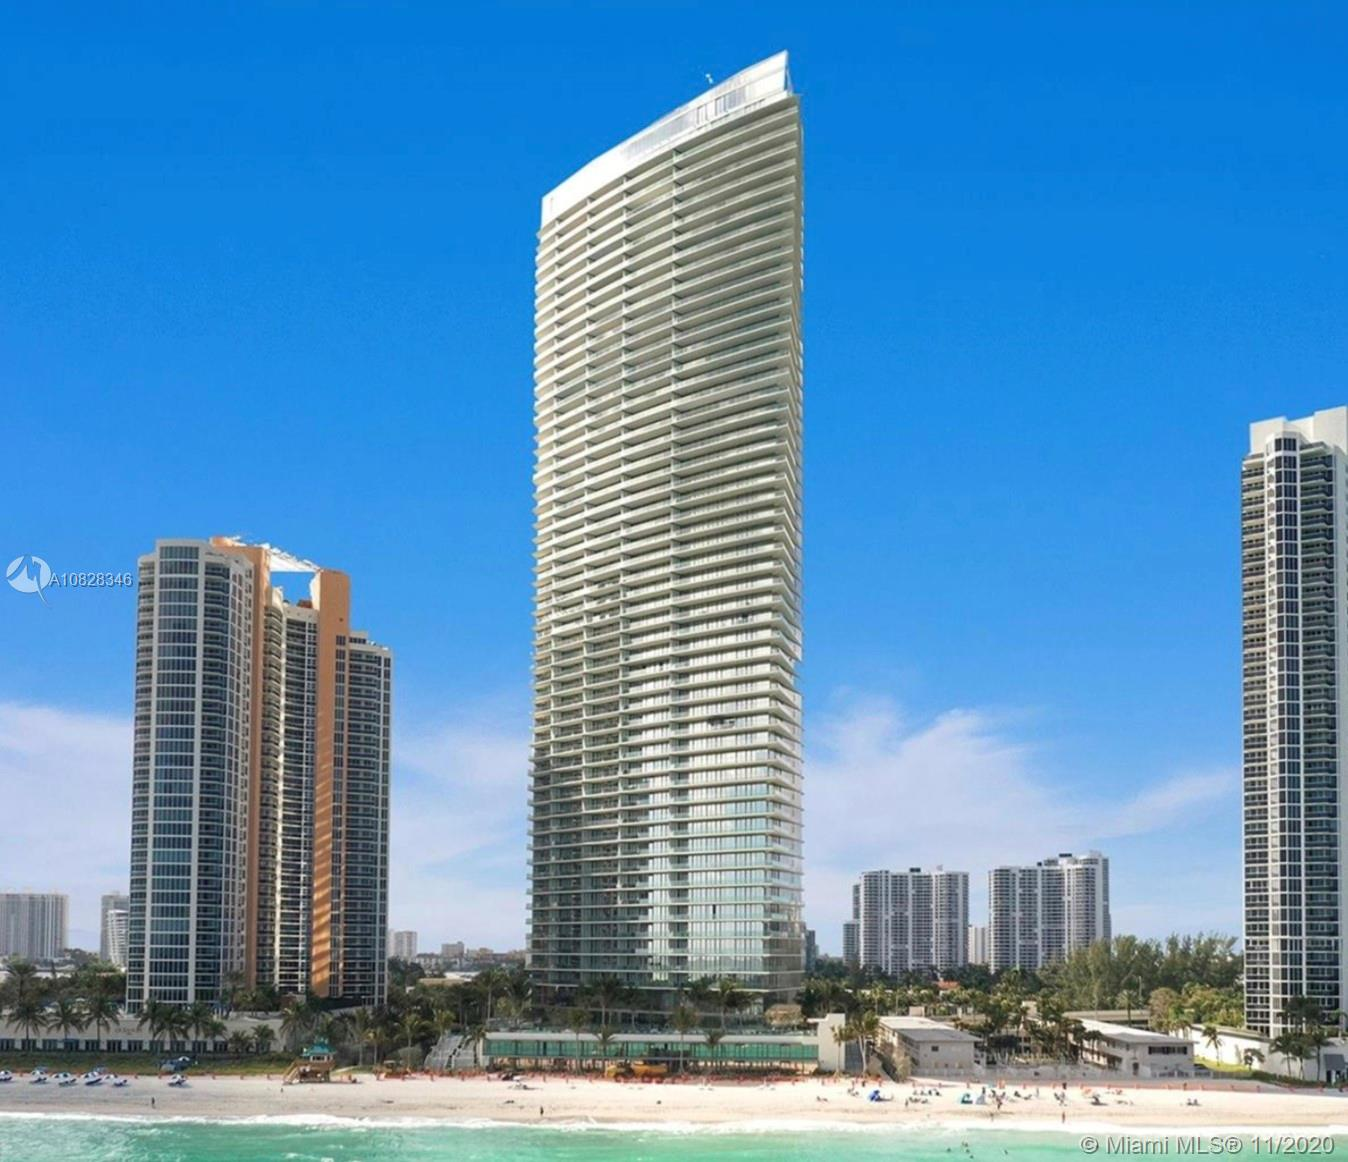 NORTH OF MIAMI is a Sunny Isles a luxury neighborhood in the Miami area. Nestseekers Internatinal brings a new dimension to South Florida's ultra-luxury, high-end real estate.The Armani Casa is a 60-story oceanfront tower. This 2 bed 3 bath unit is accent by marble, wood and the highest finishes.